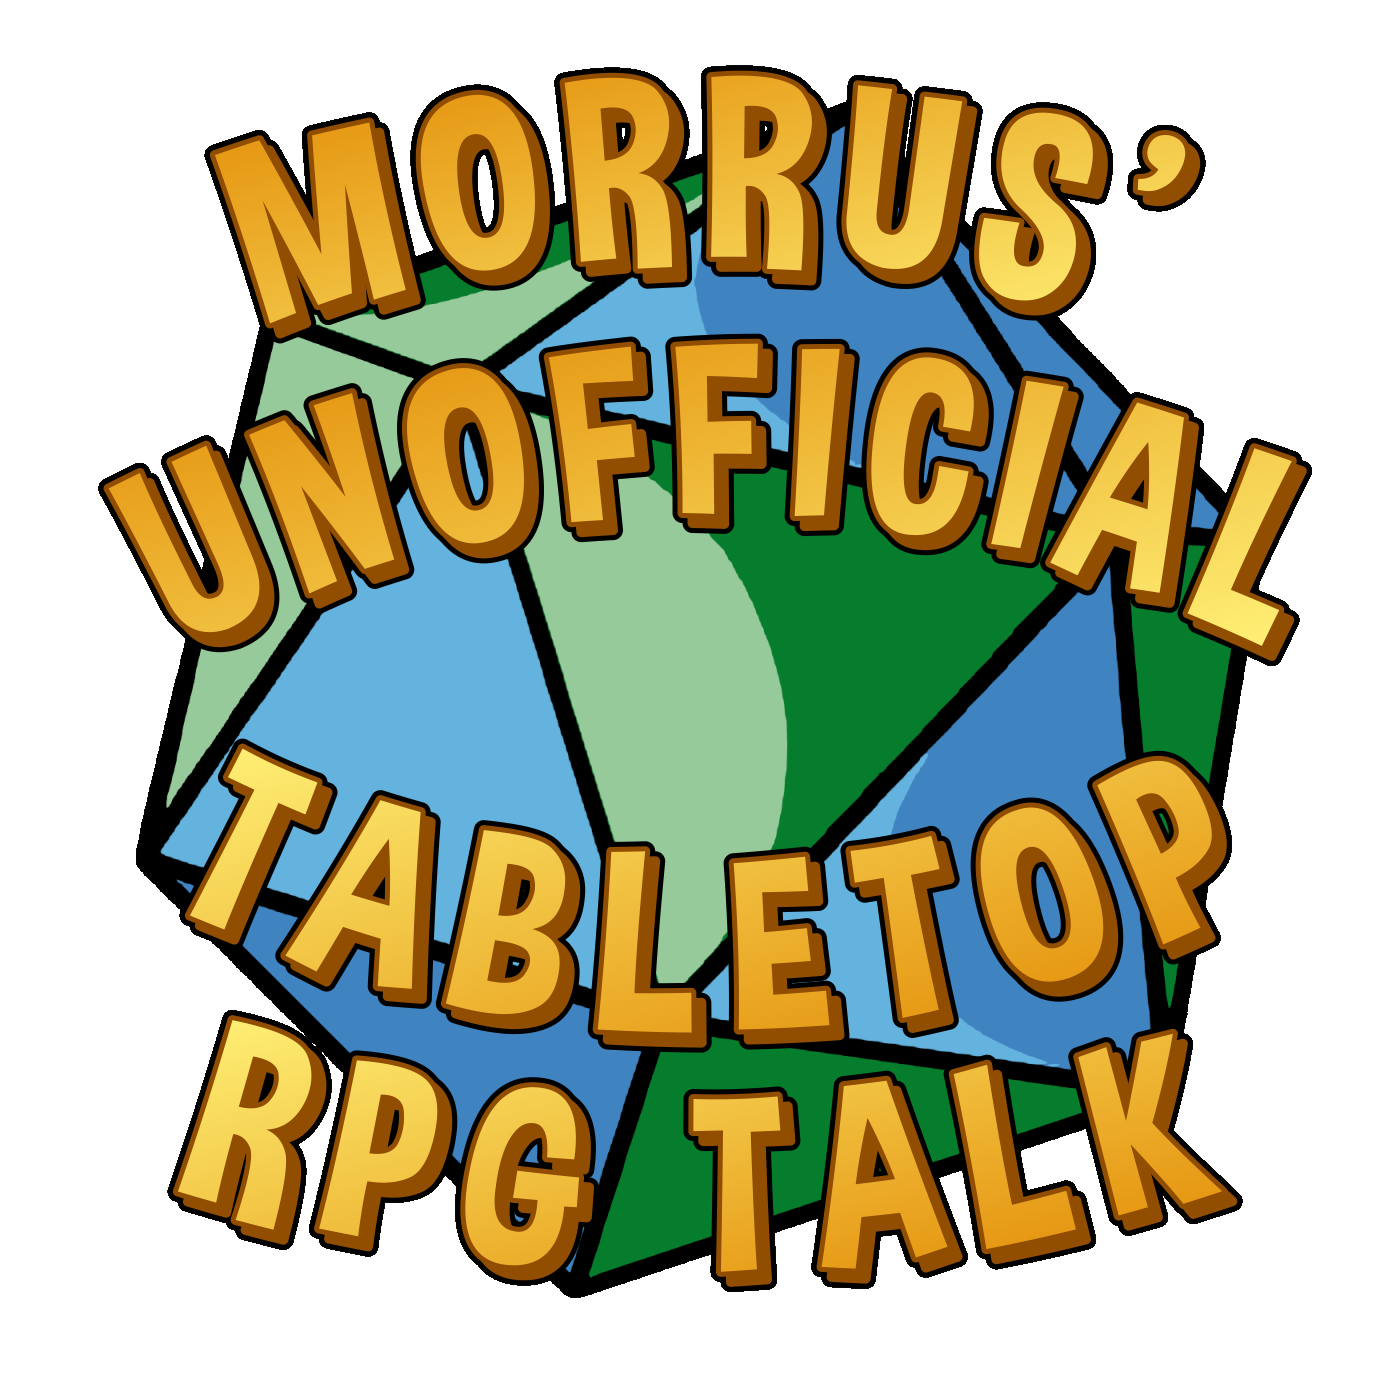 Morrus' Unofficial Tabletop RPG Talk